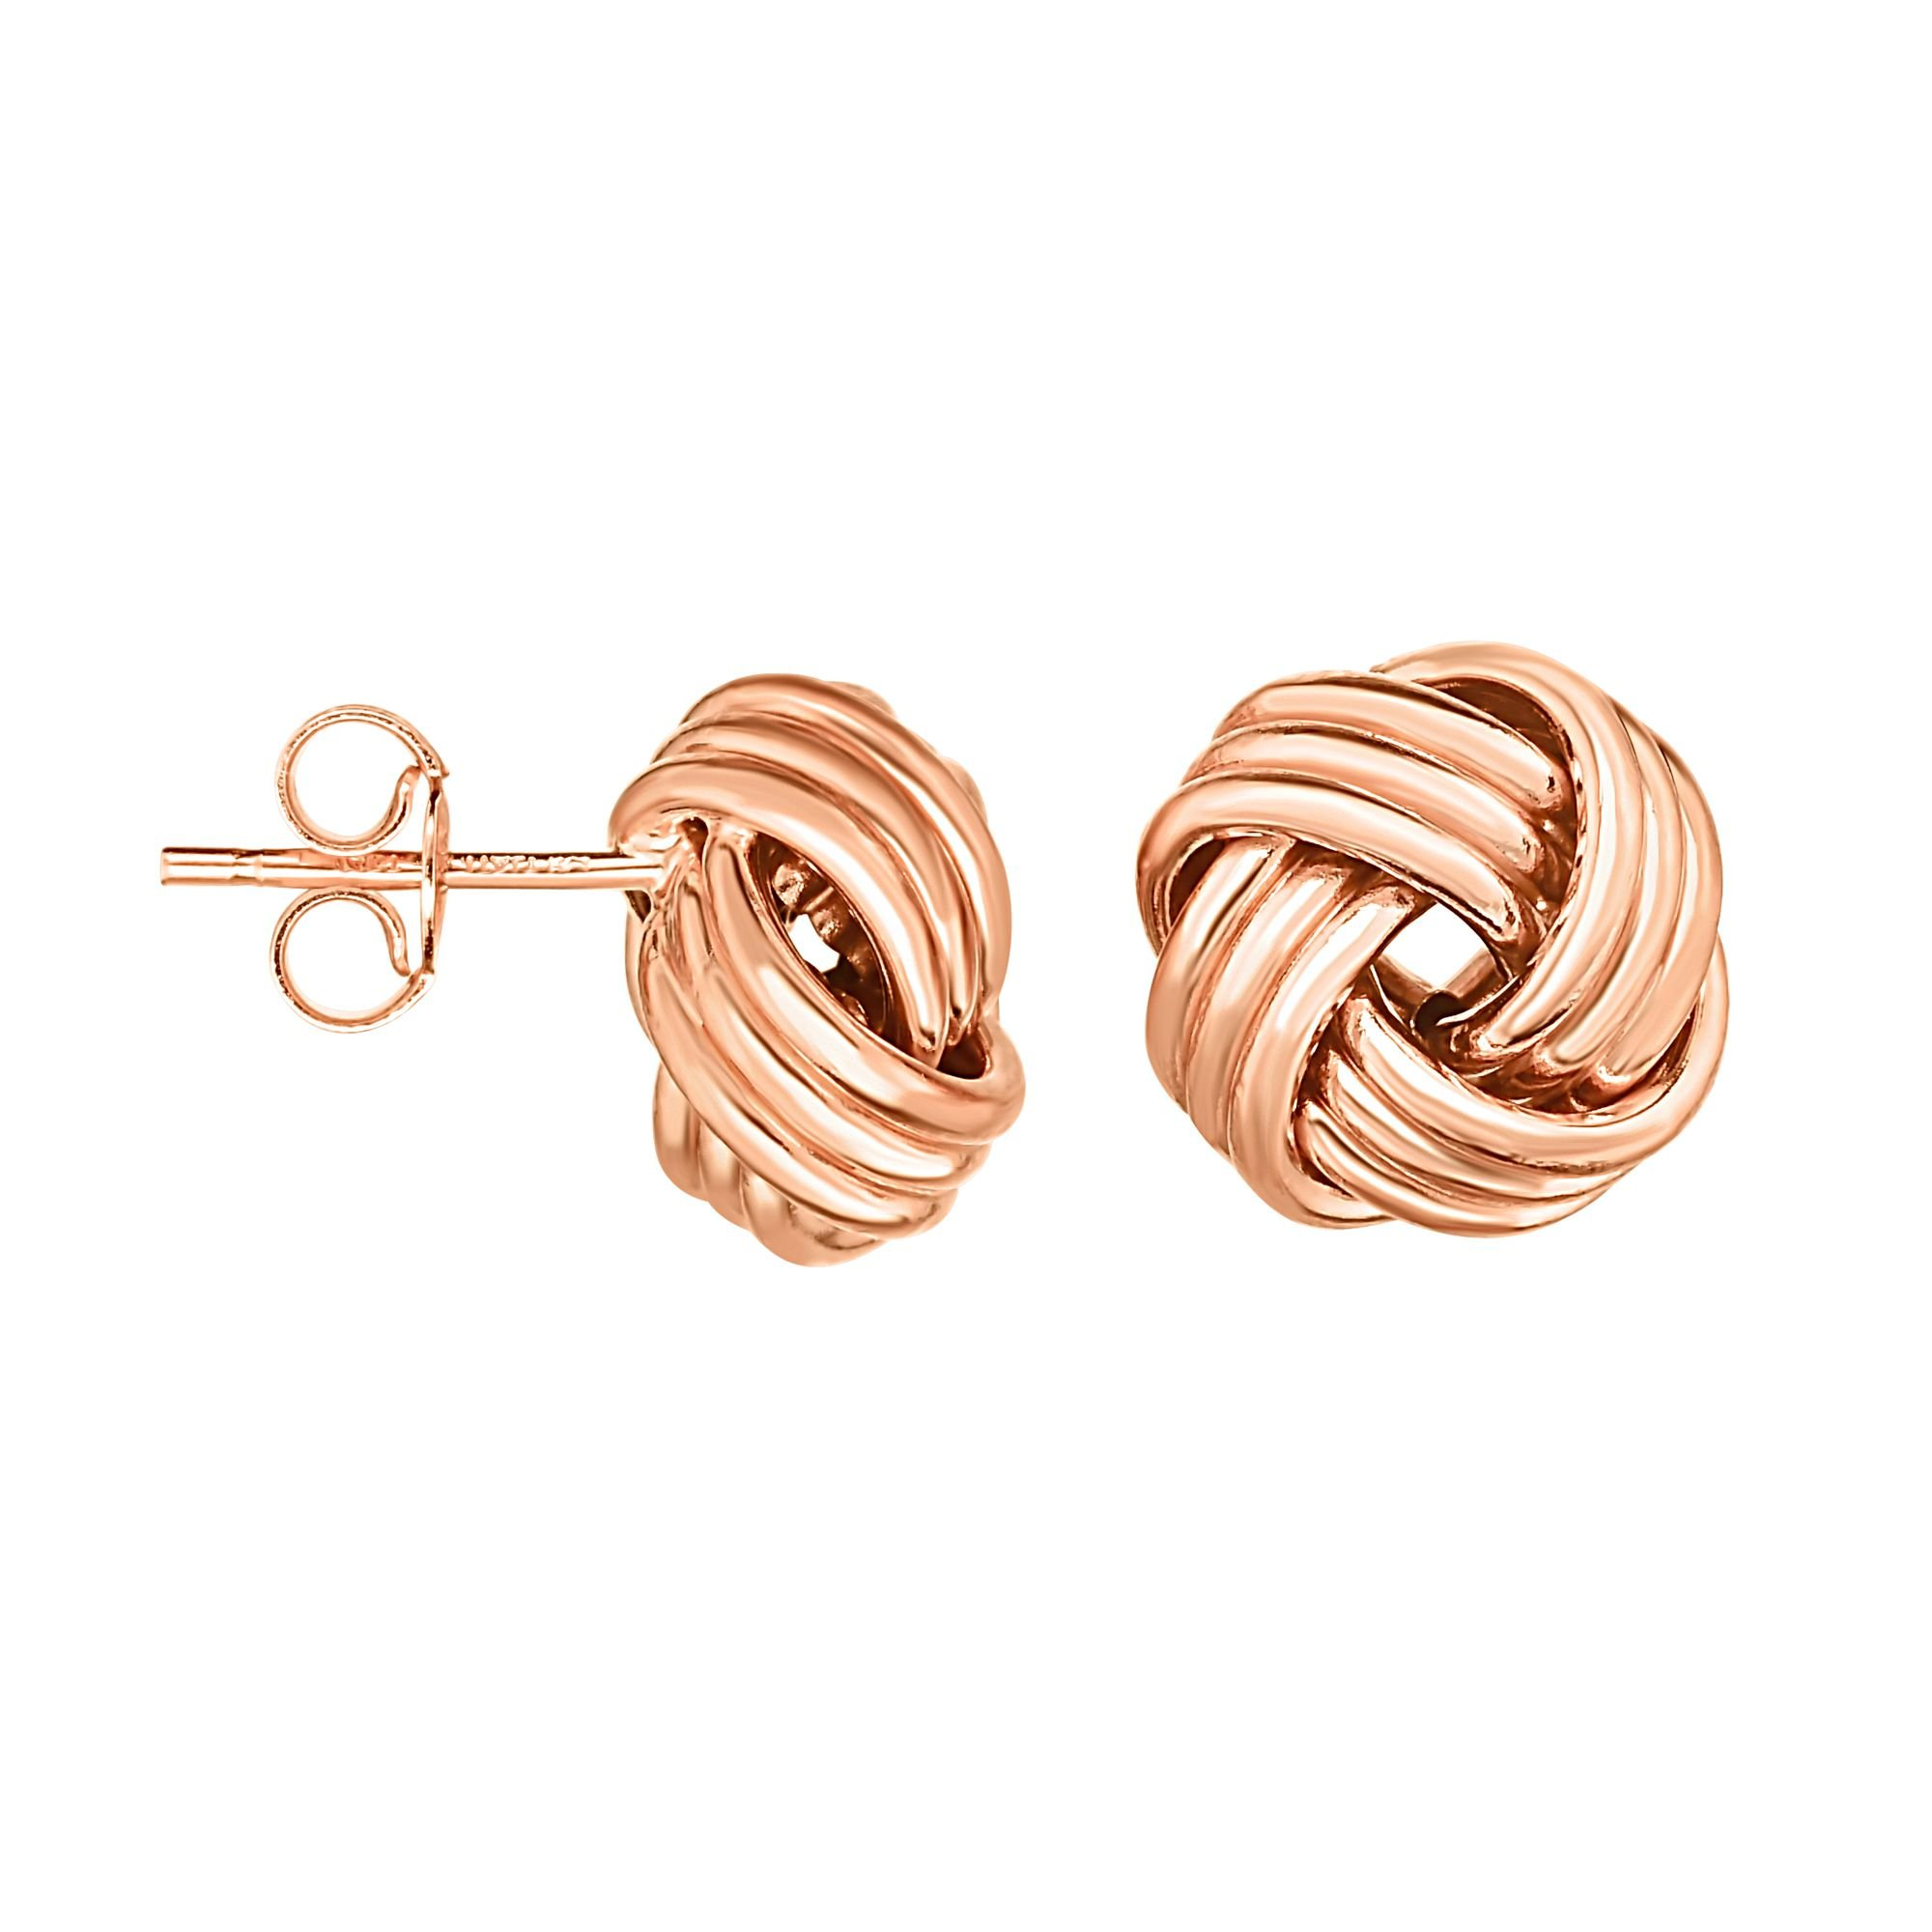 Aleksa Ladies 14K Gold Rose Finish Round Love Knot Earrings with Push Back Clasp